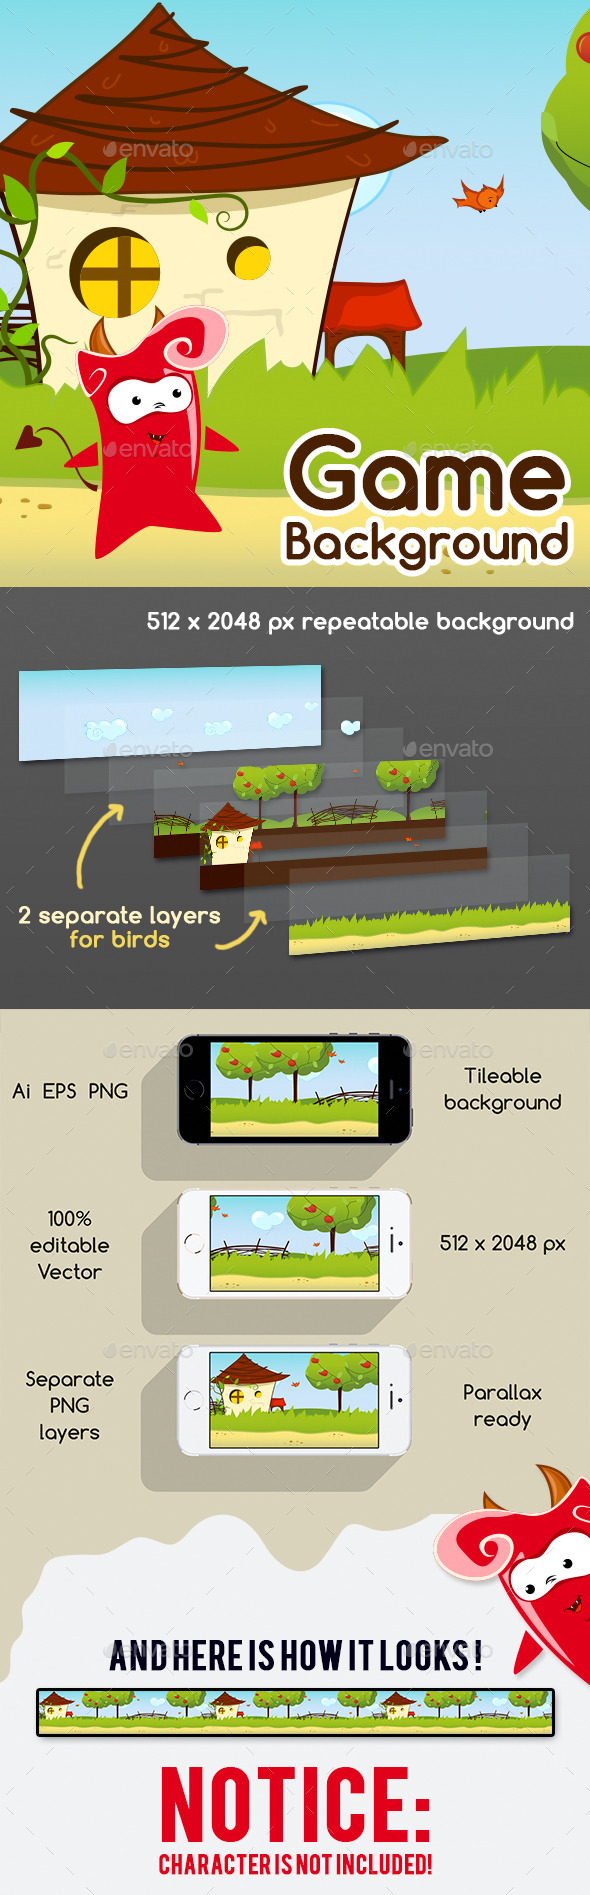 Game Background with Parallax Effect - Backgrounds Game Assets